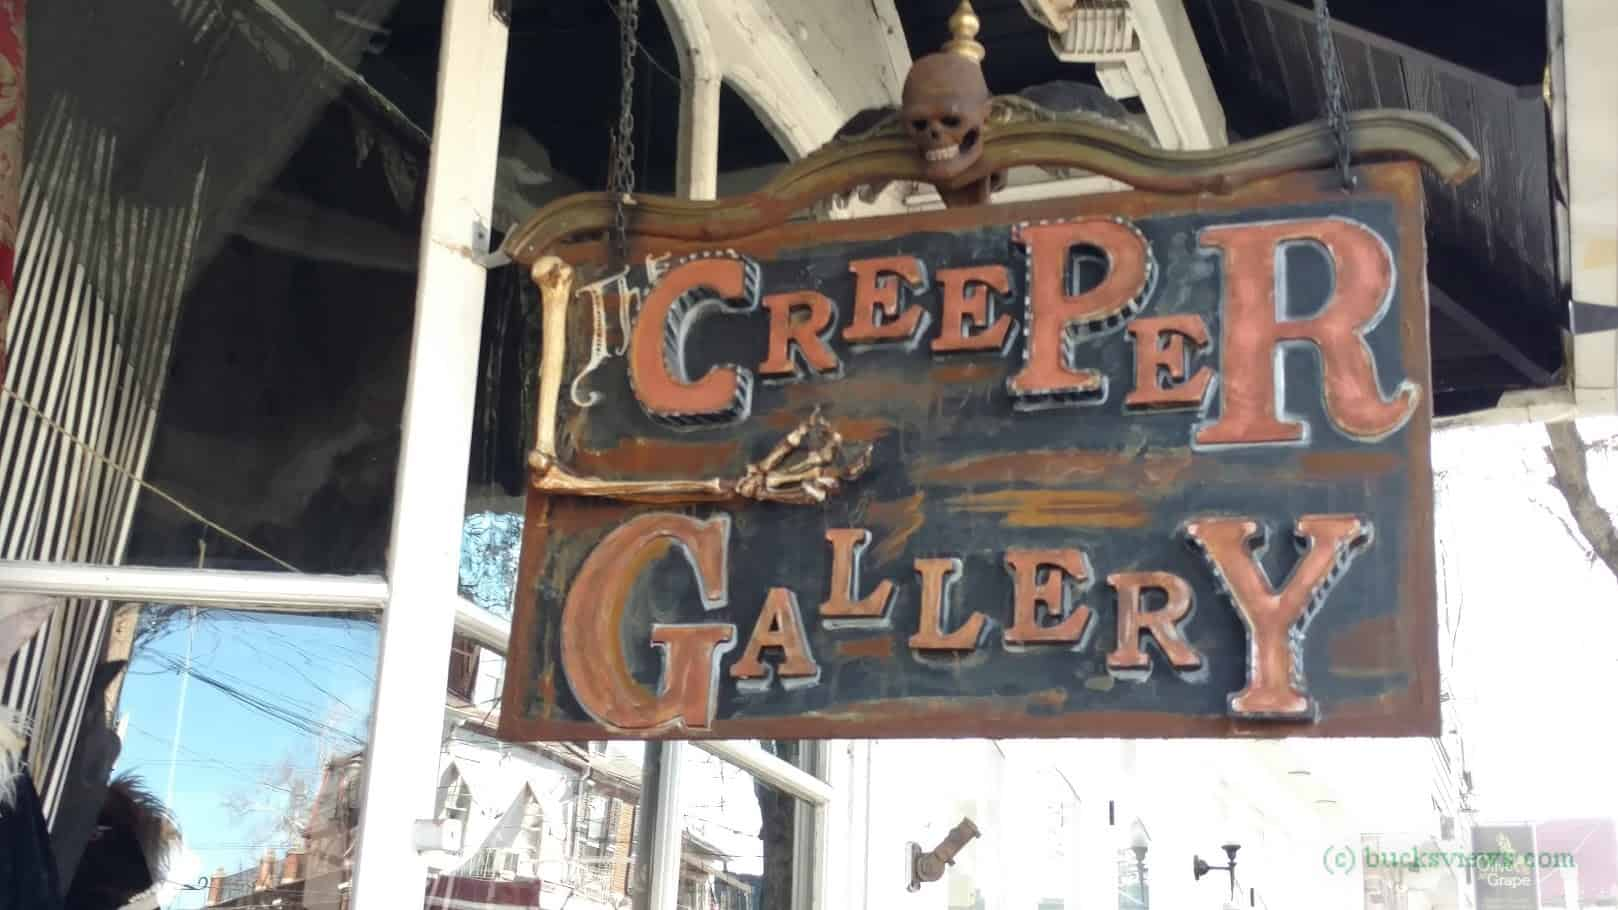 The Creeper Gallery in New Hope